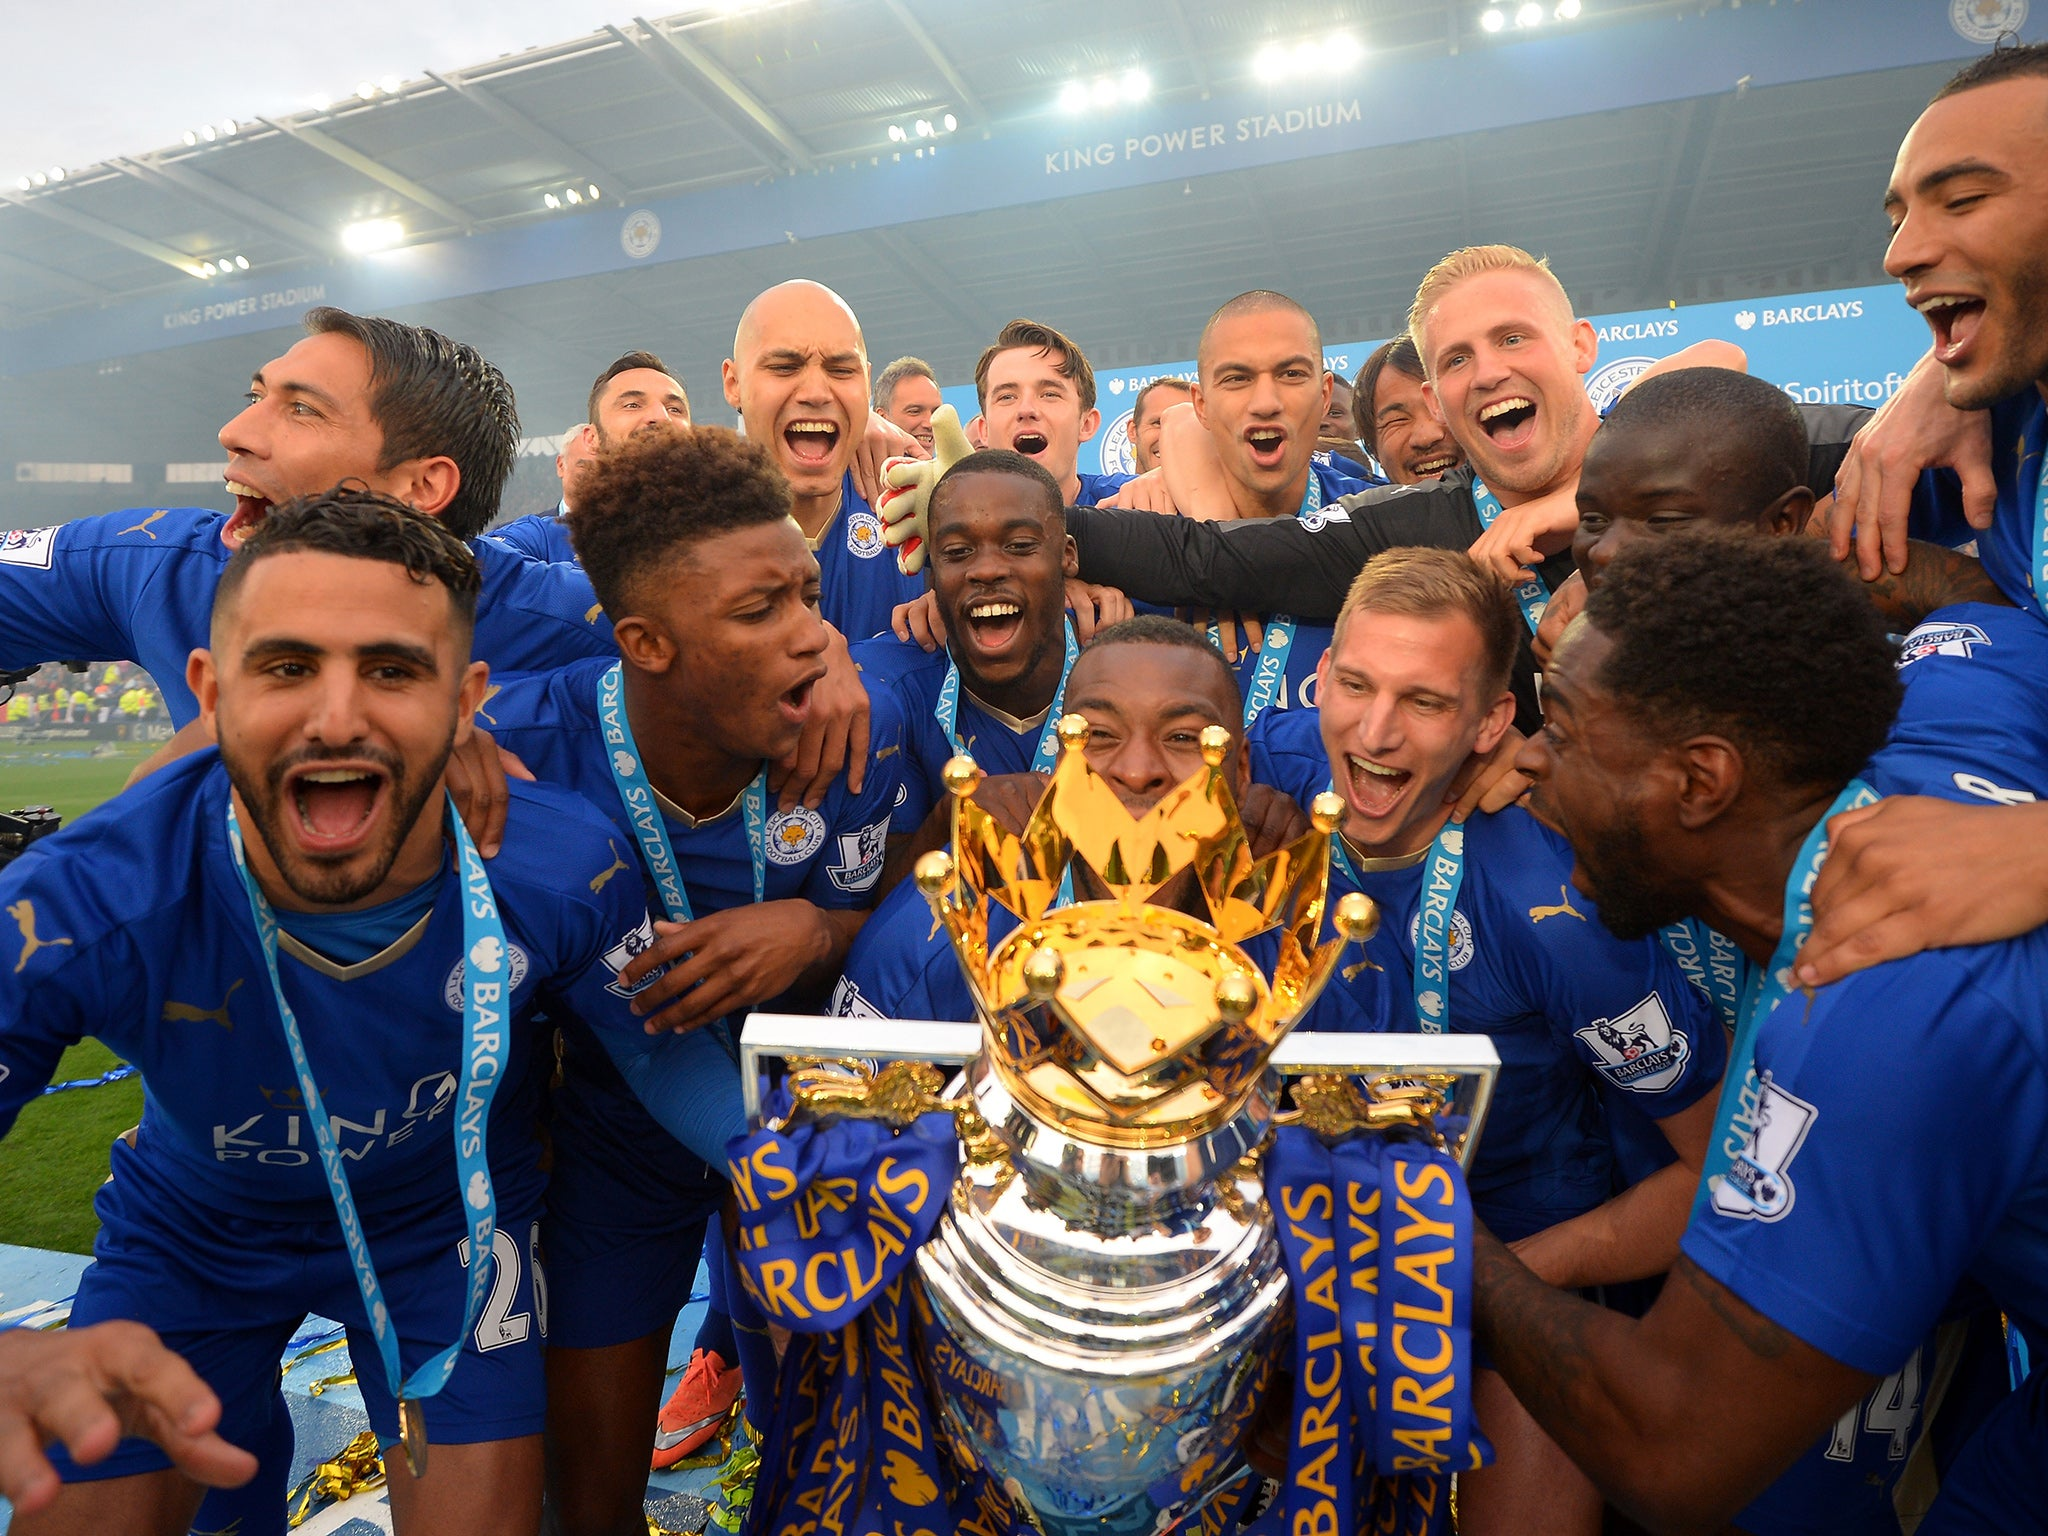 Premier League fixtures on TV: Sky Sports and BT Sport announce fixture changes with Hull vs Leicester up first